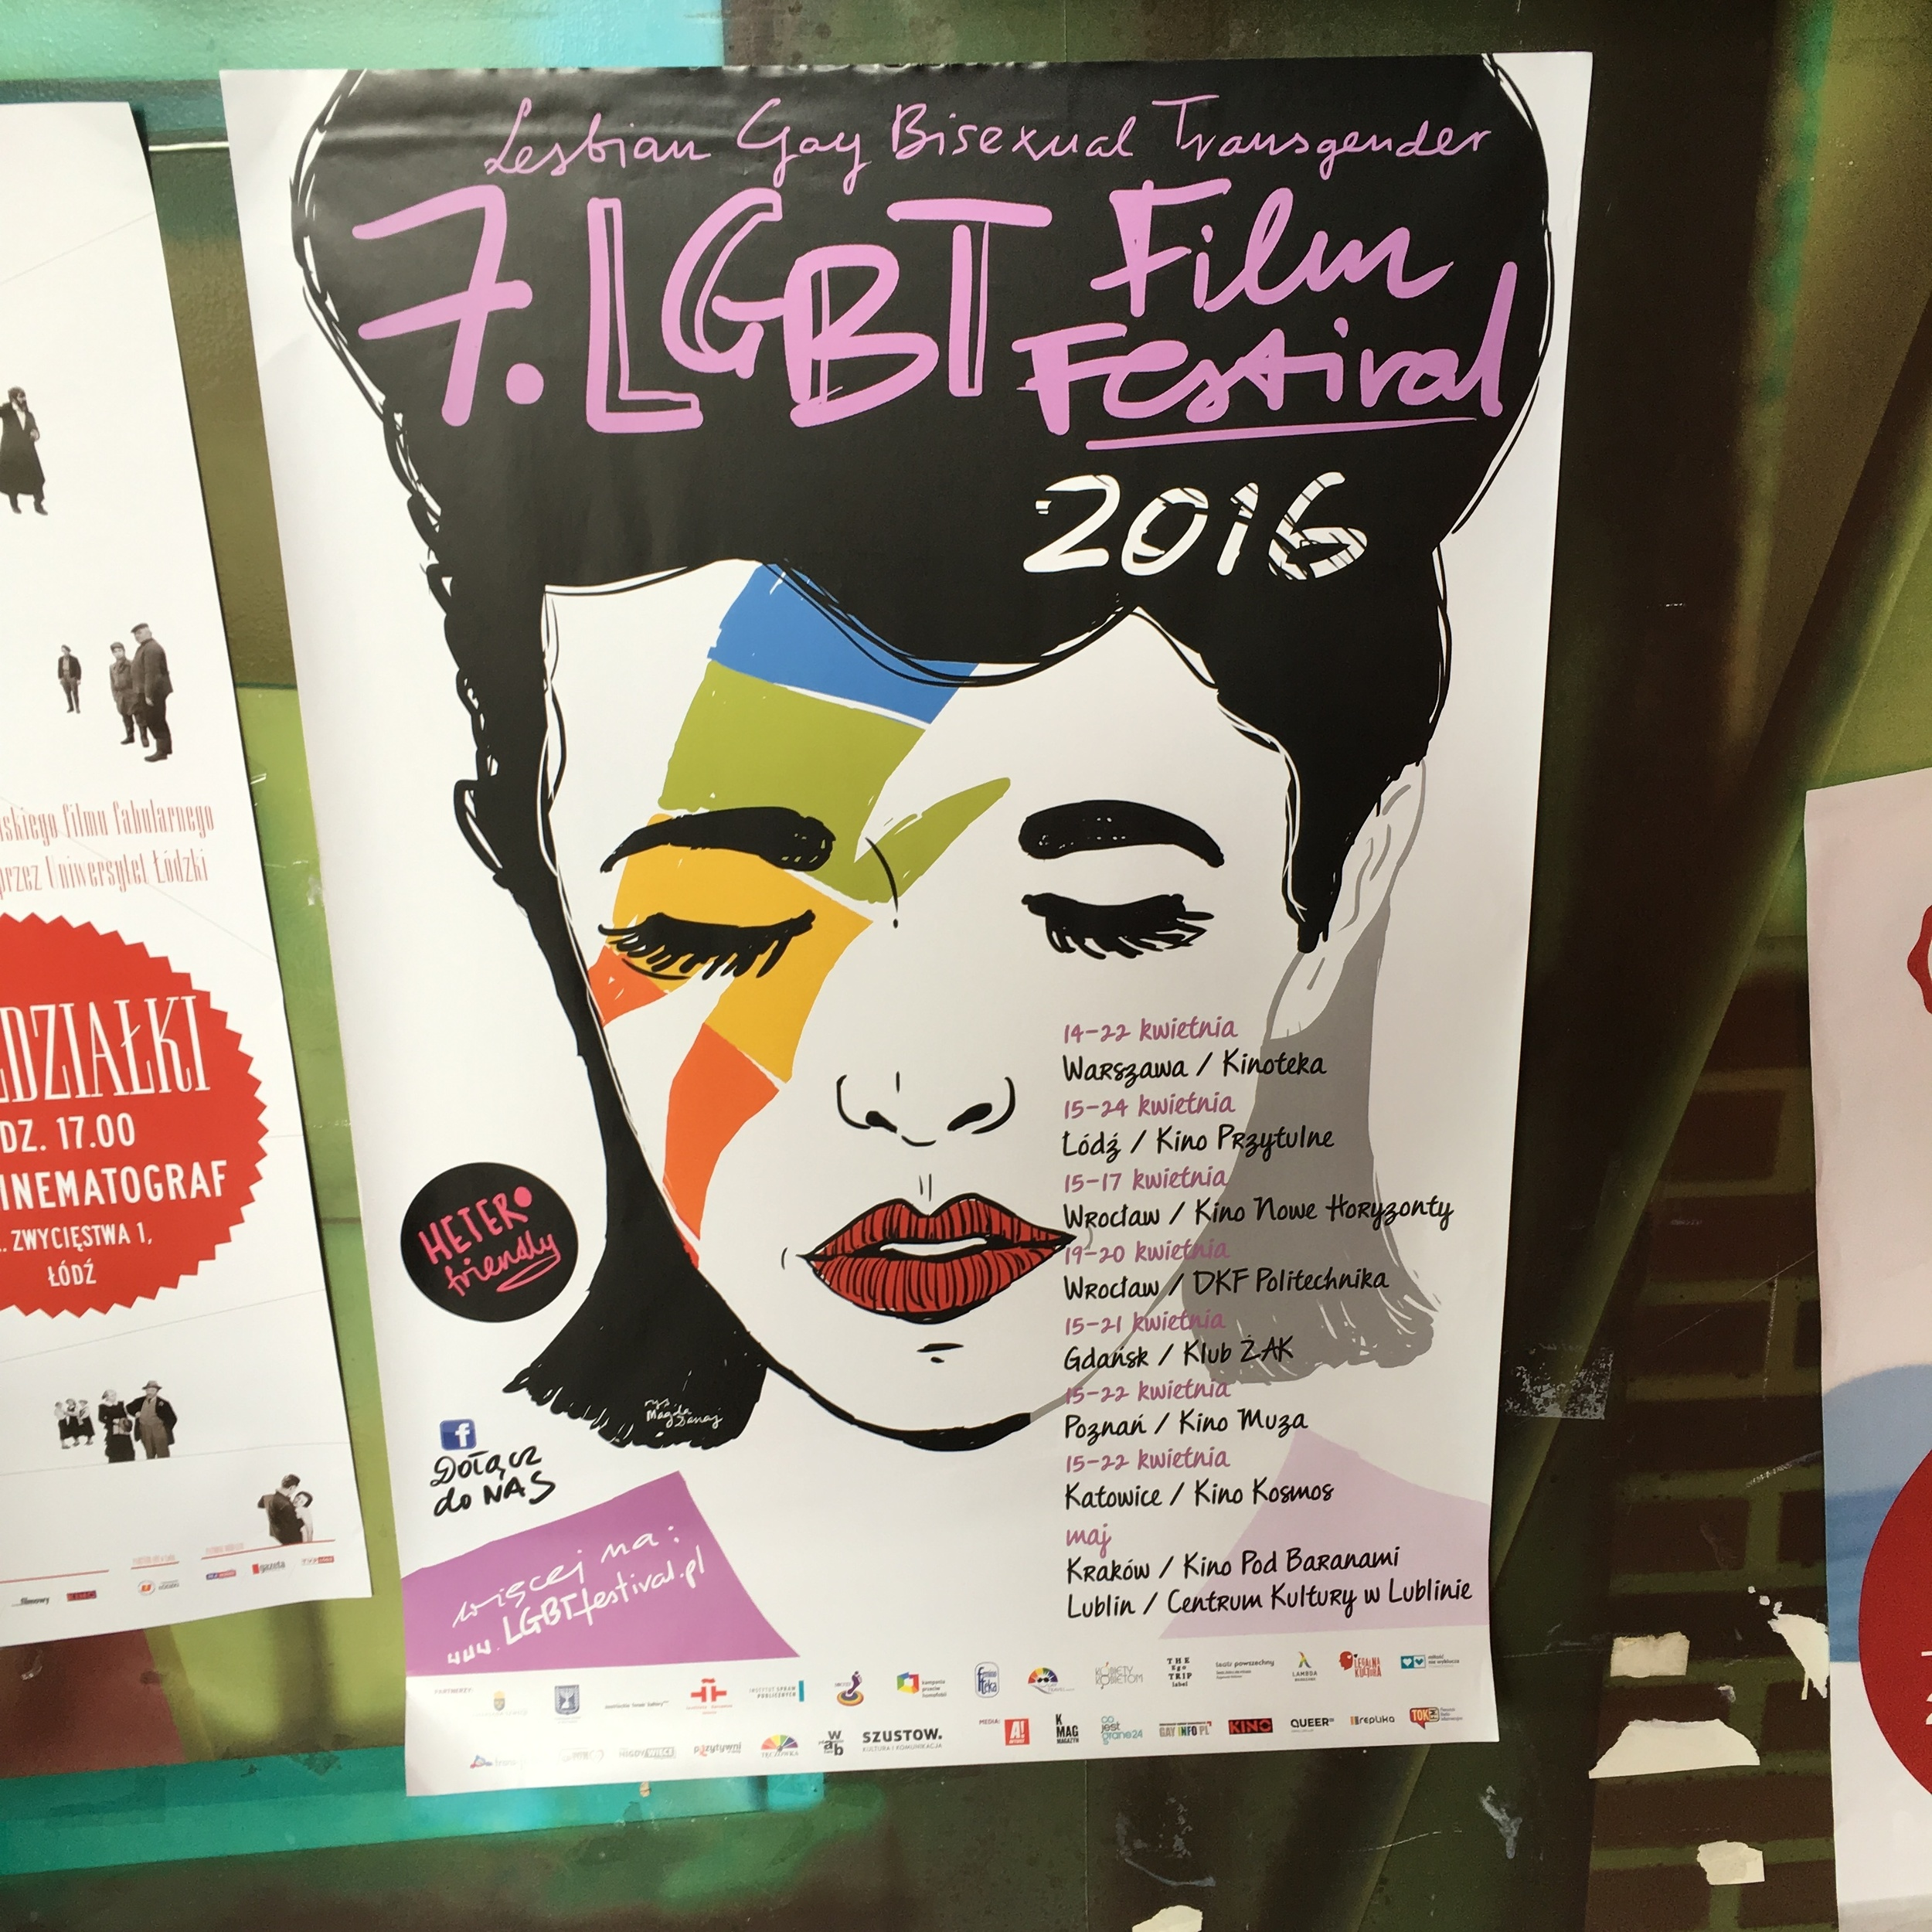 The LGBT Film Festival is held in cities across Poland. This particular flyer was posted in a town called Lodz, where I had the pleasure of celebrating gay pride. Pride pics to come, yo.